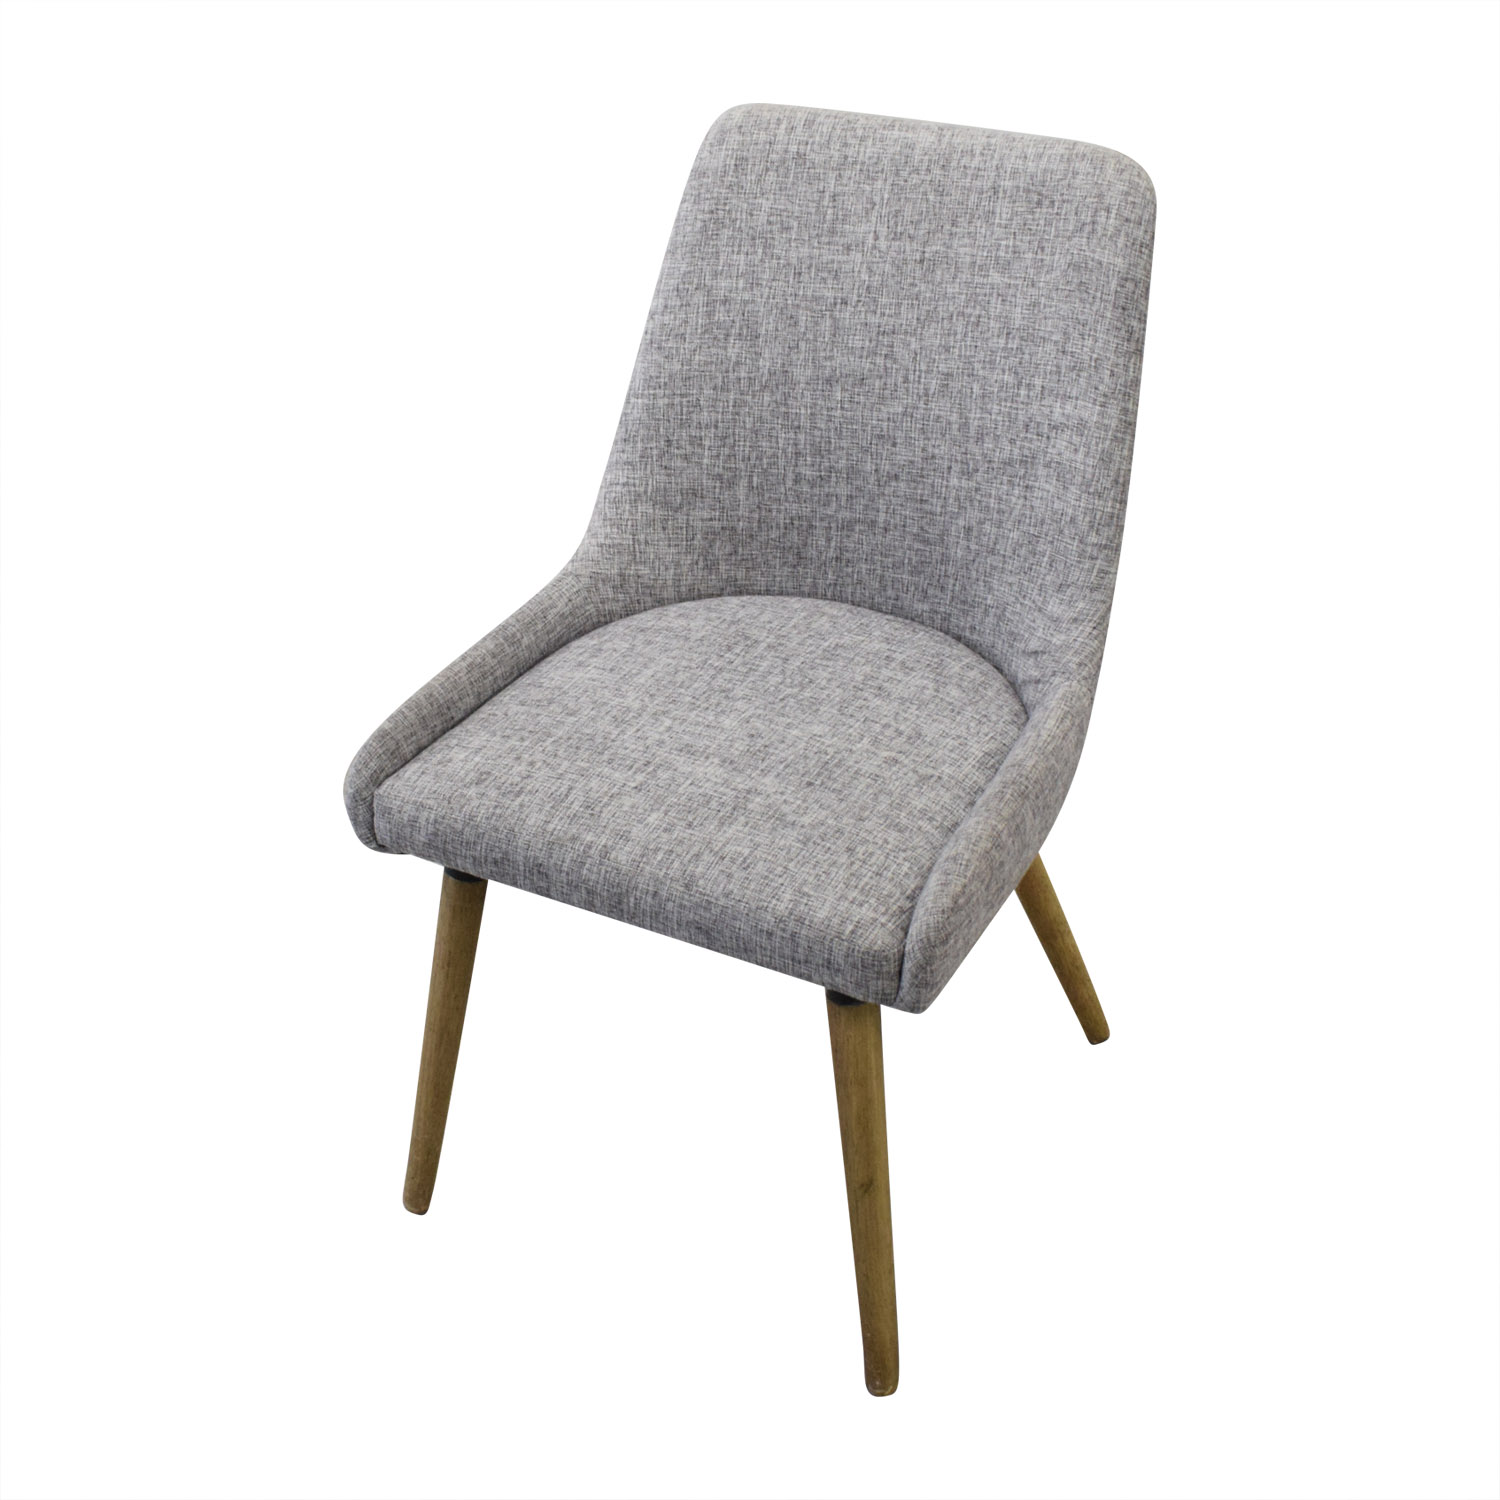 West Elm West Elm Mid Century Upholstered Dining Chairs dimensions